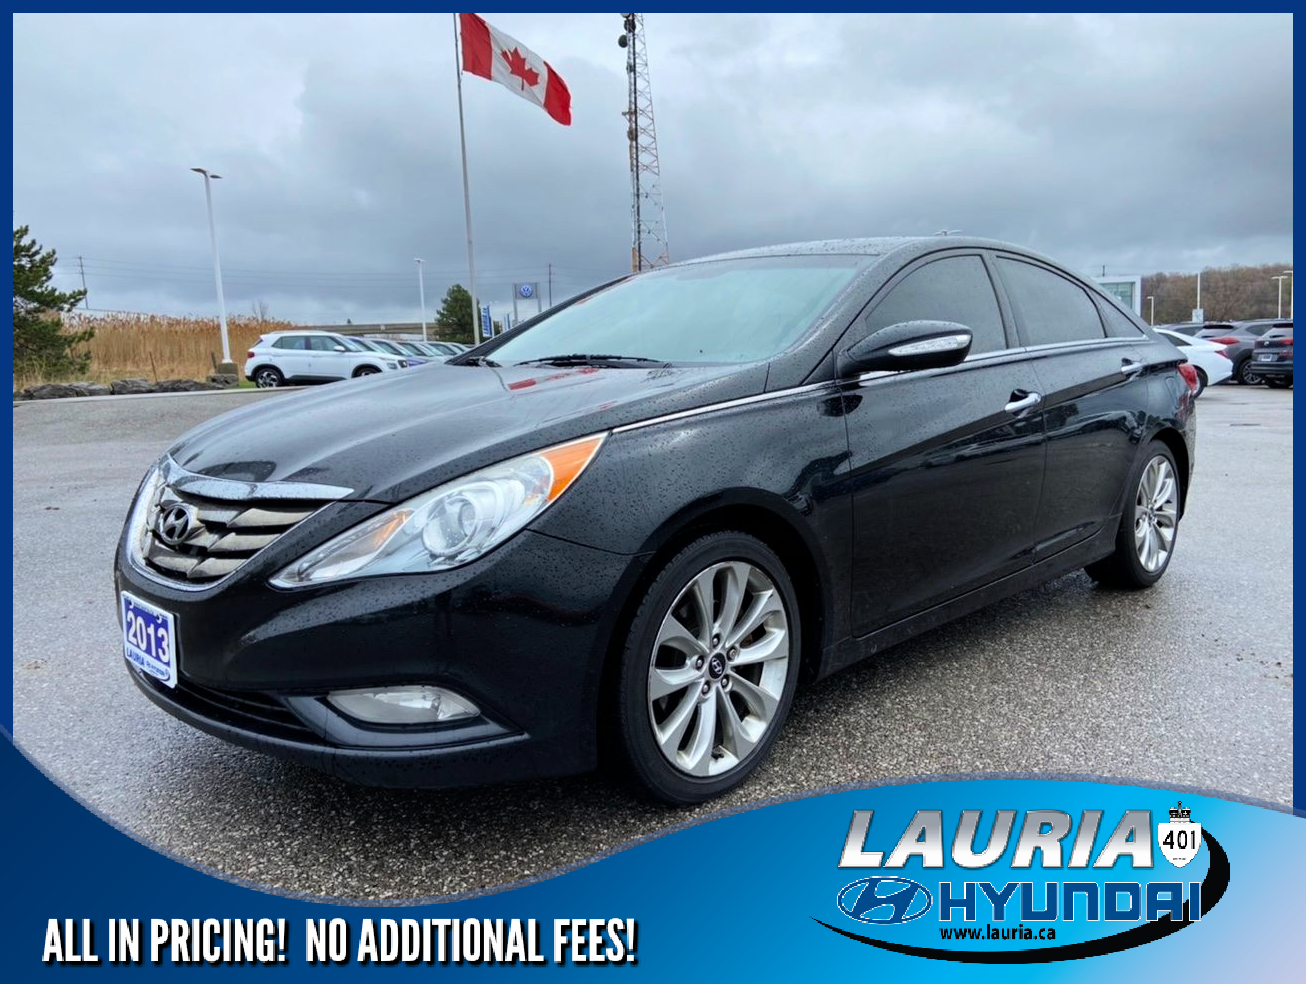 Pre-Owned 2013 Hyundai Sonata 2.0T Limited - LOADED